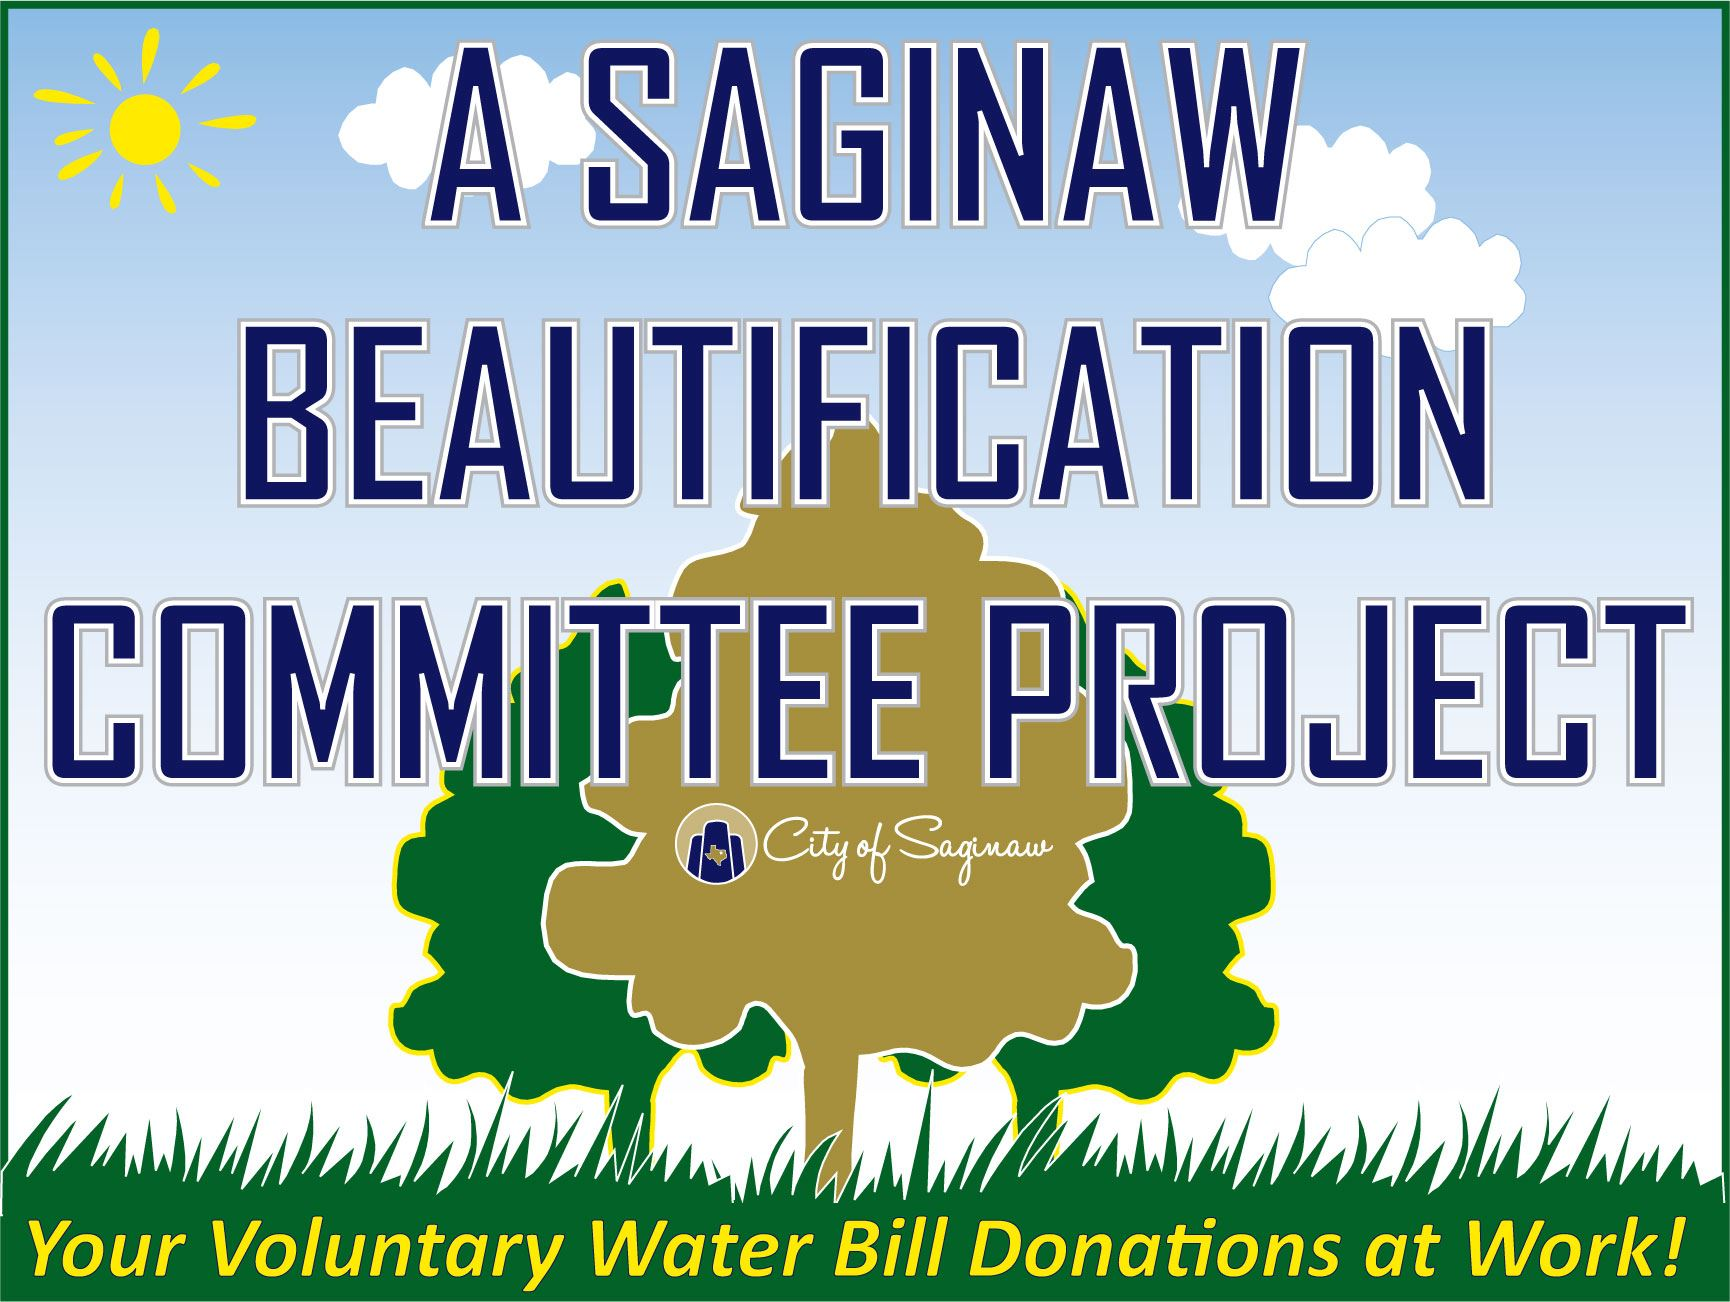 A Saginaw Beautification Committee Project Your Voluntary Water Bill Donations at Work!